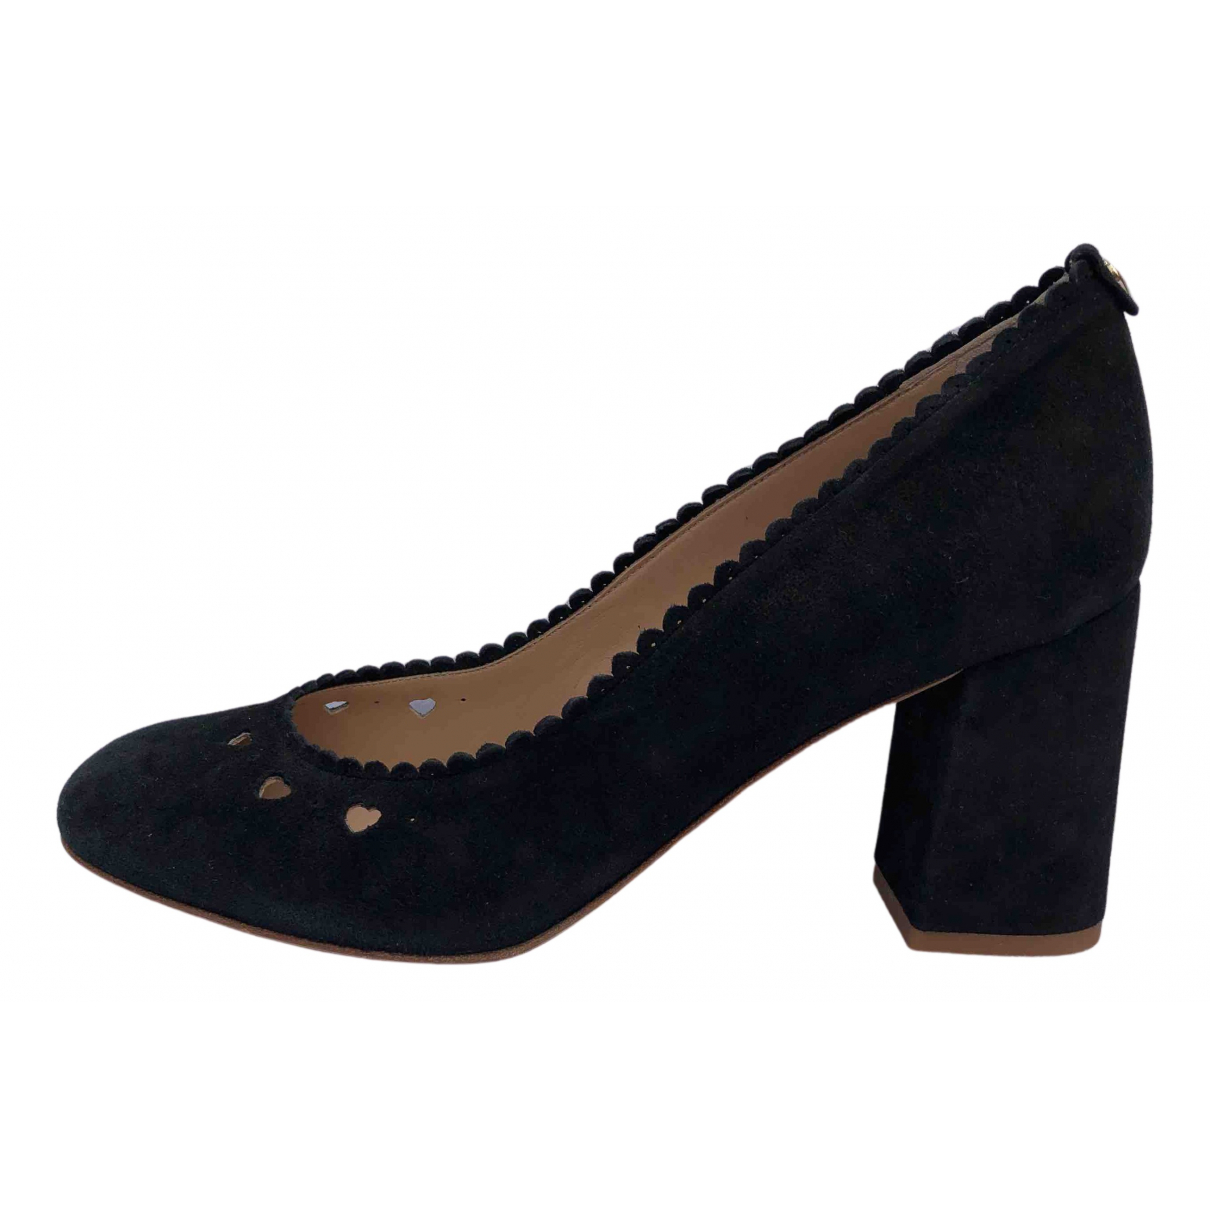 Twin Set N Black Suede Heels for Women 38 EU